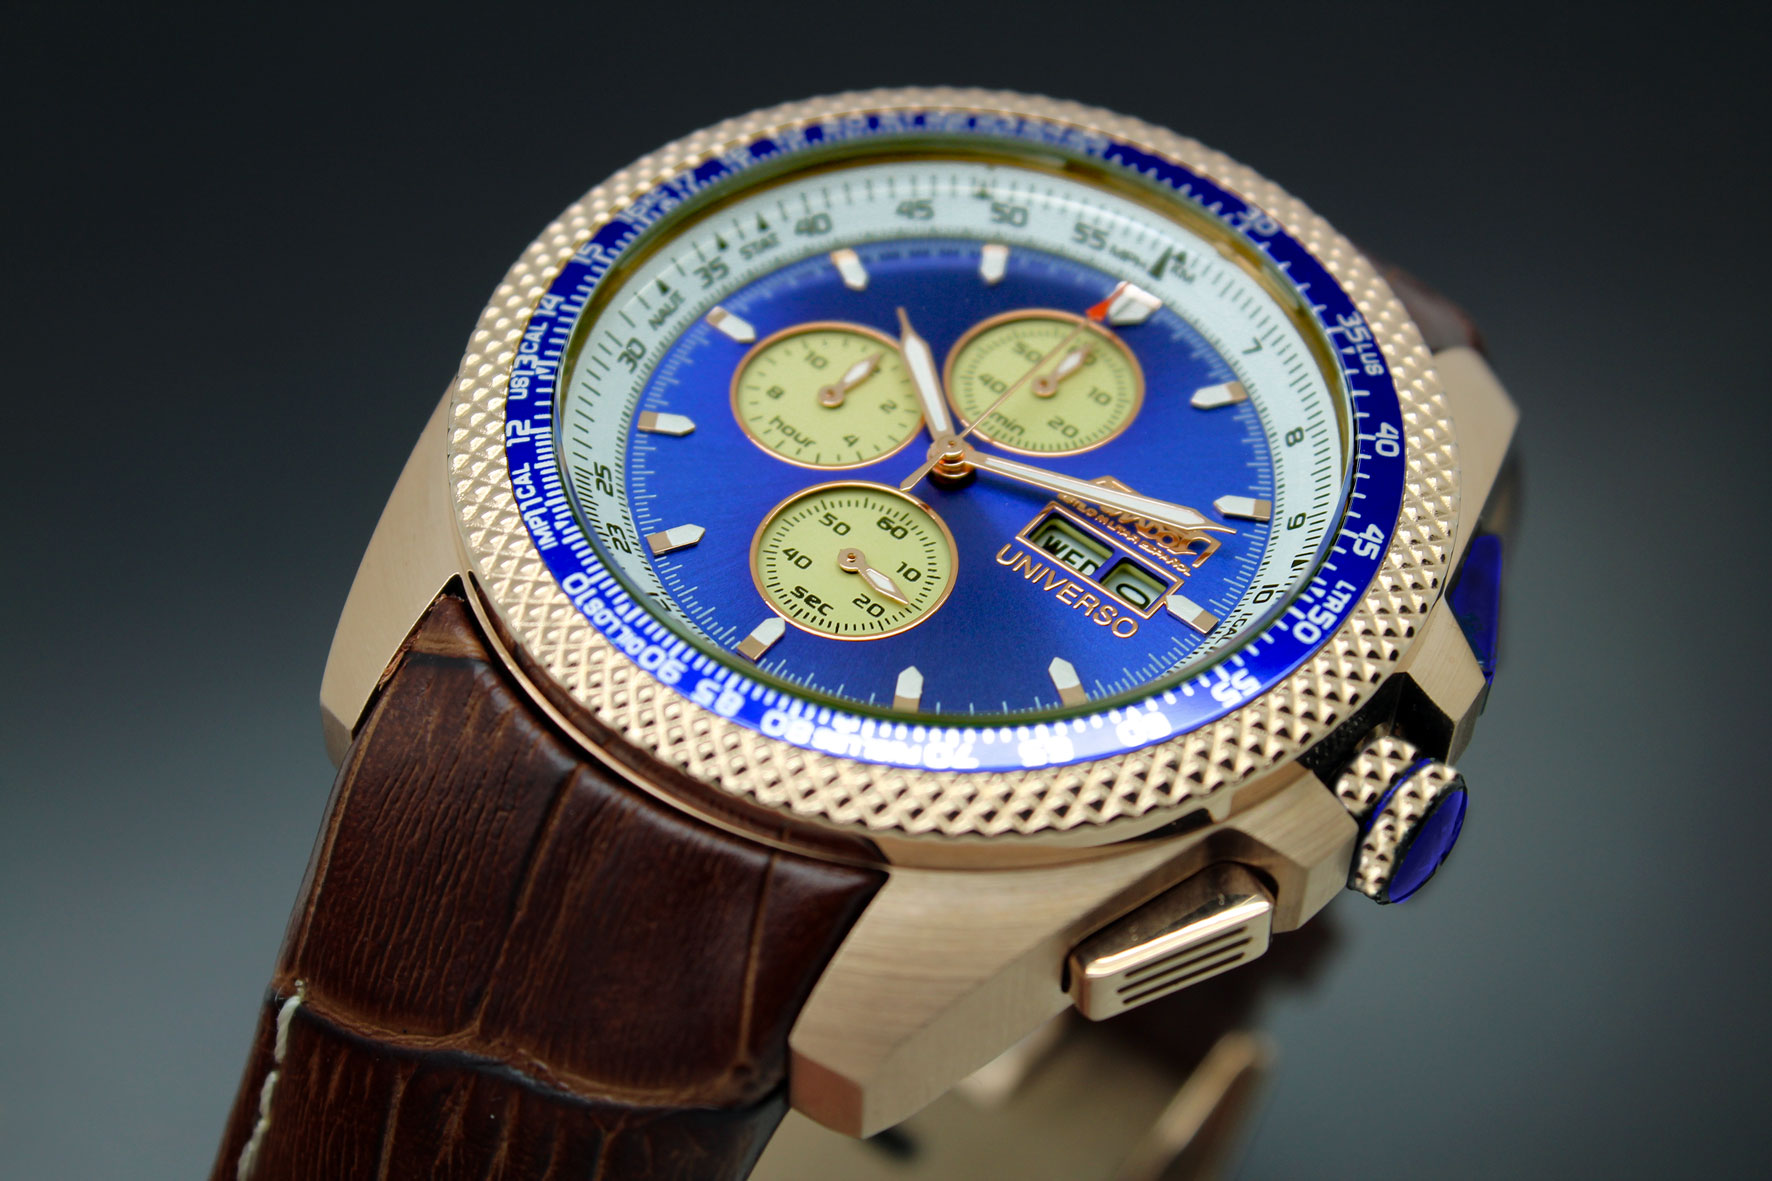 Reloj Aviador Watch Universo AV-1167